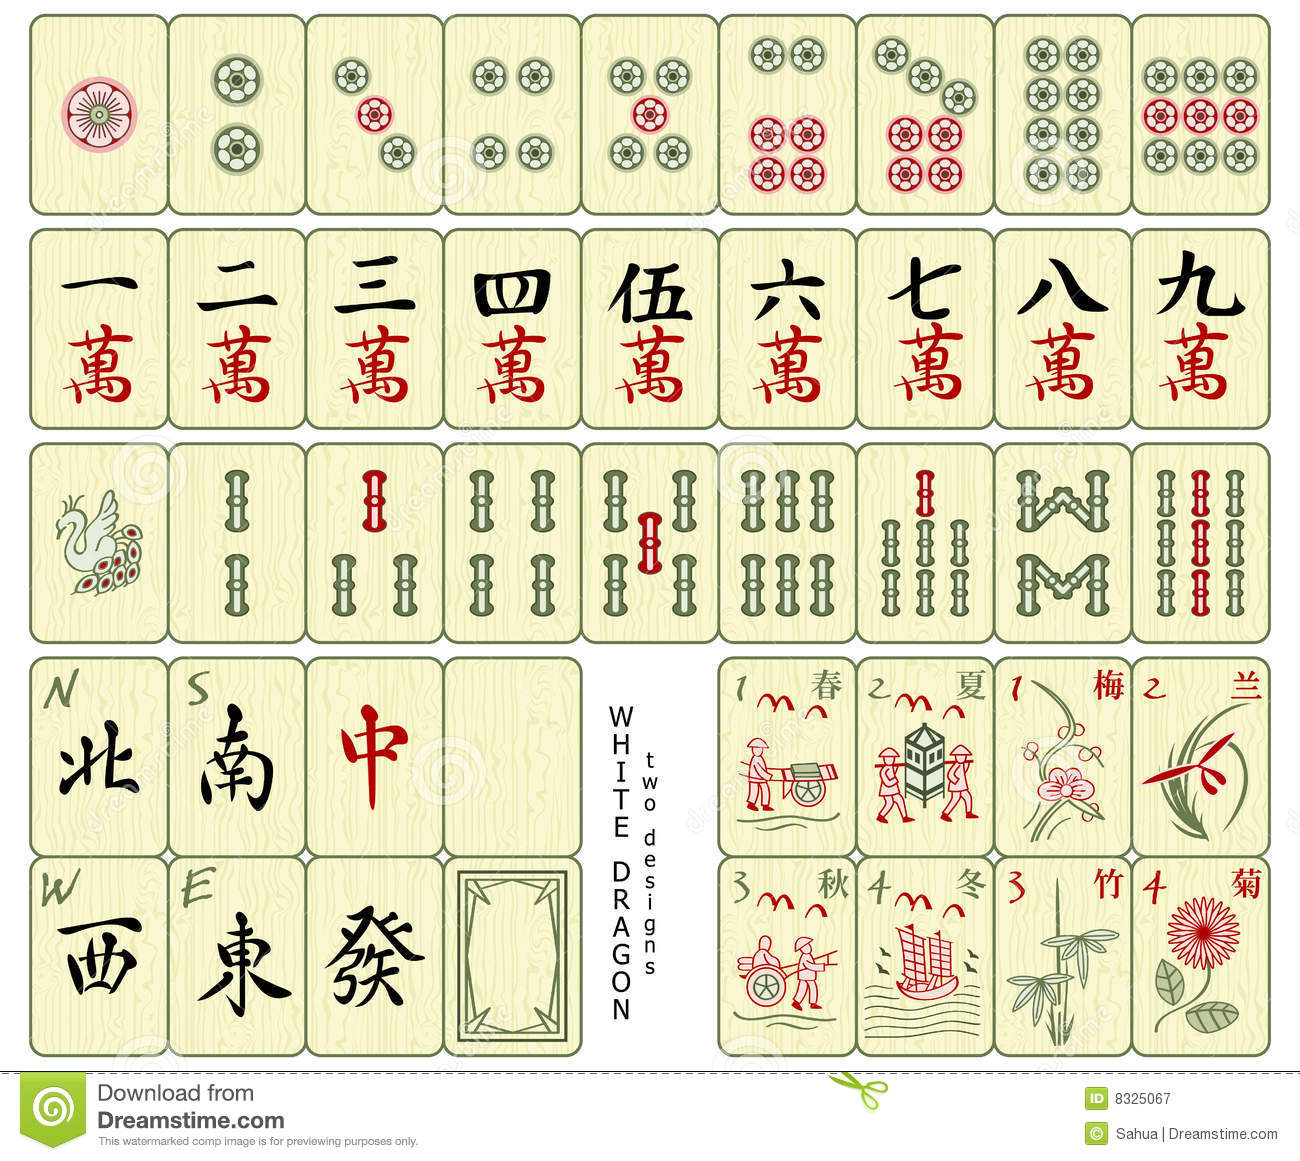 https://thumbs.dreamstime.com/z/mahjong-tiles-8325067.jpg